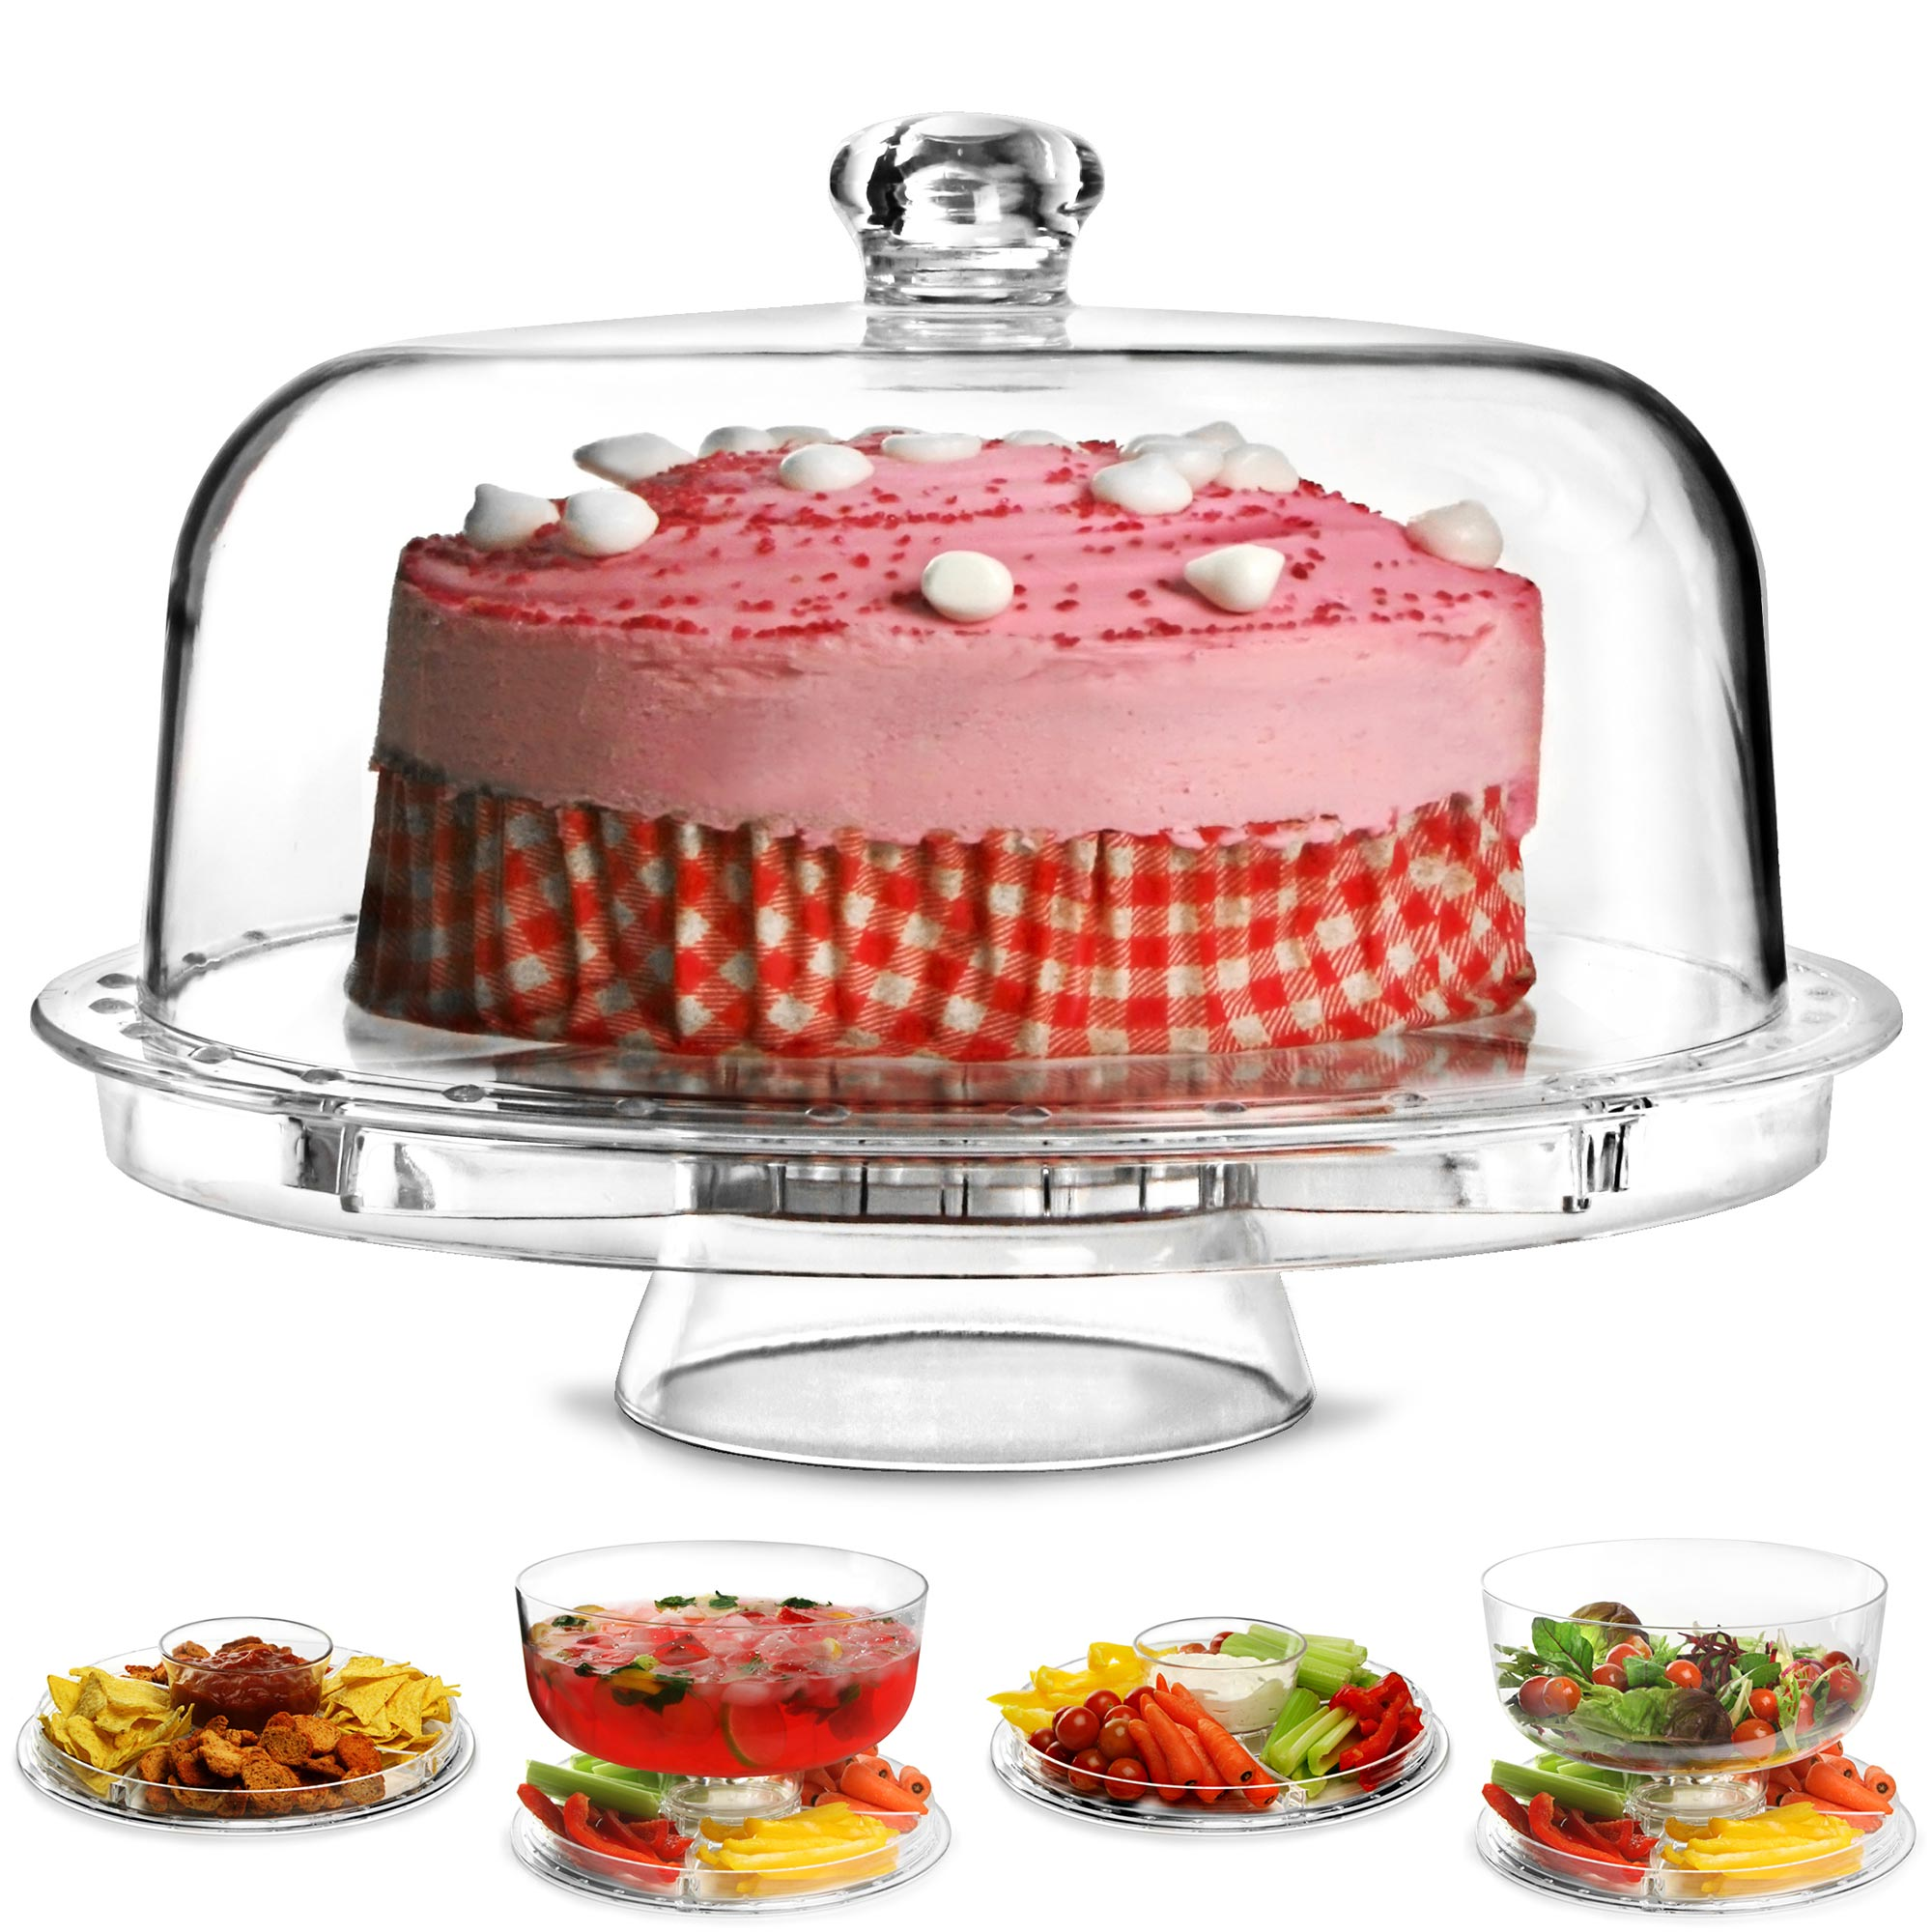 Multifunctional 5 in 1 Cake Stand and Dome